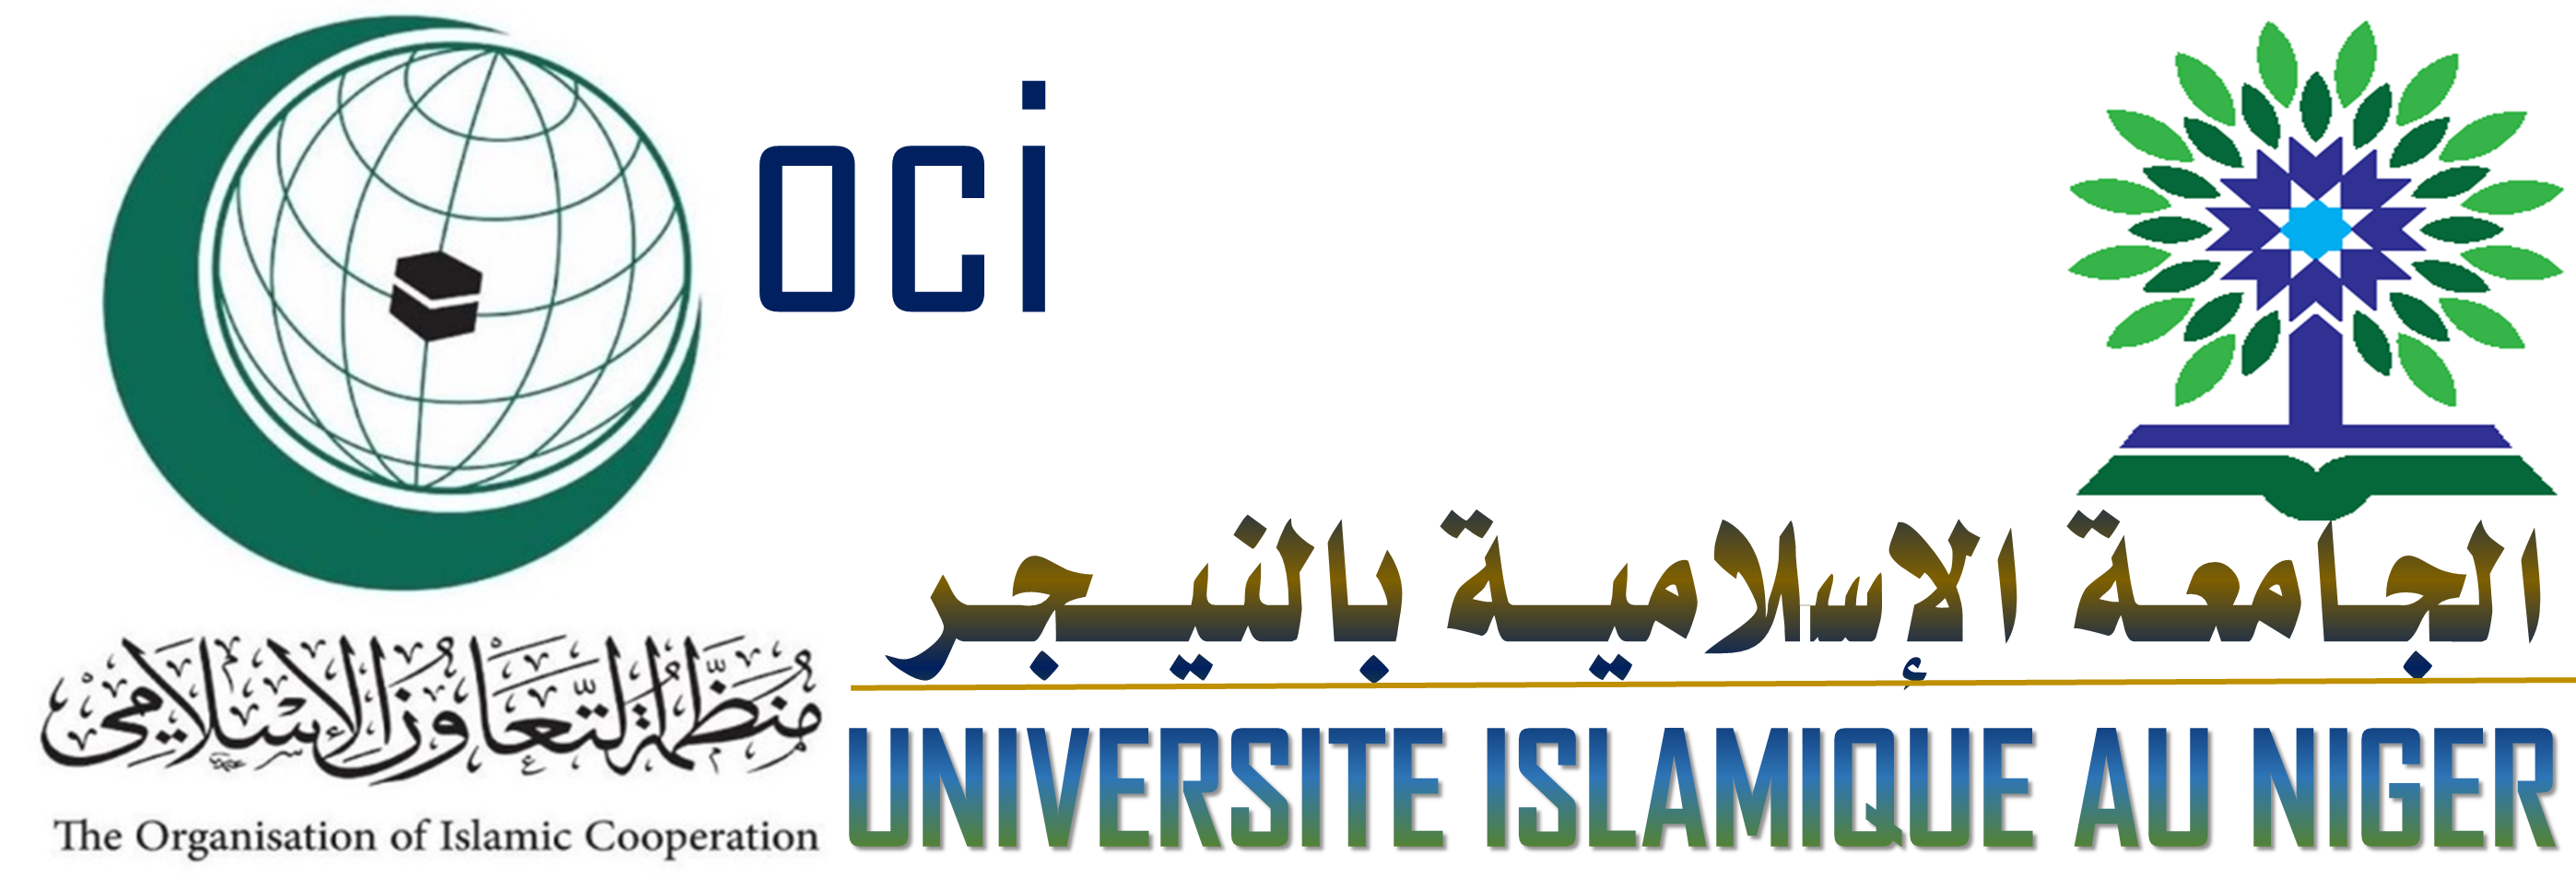 universite Islamique au Niger